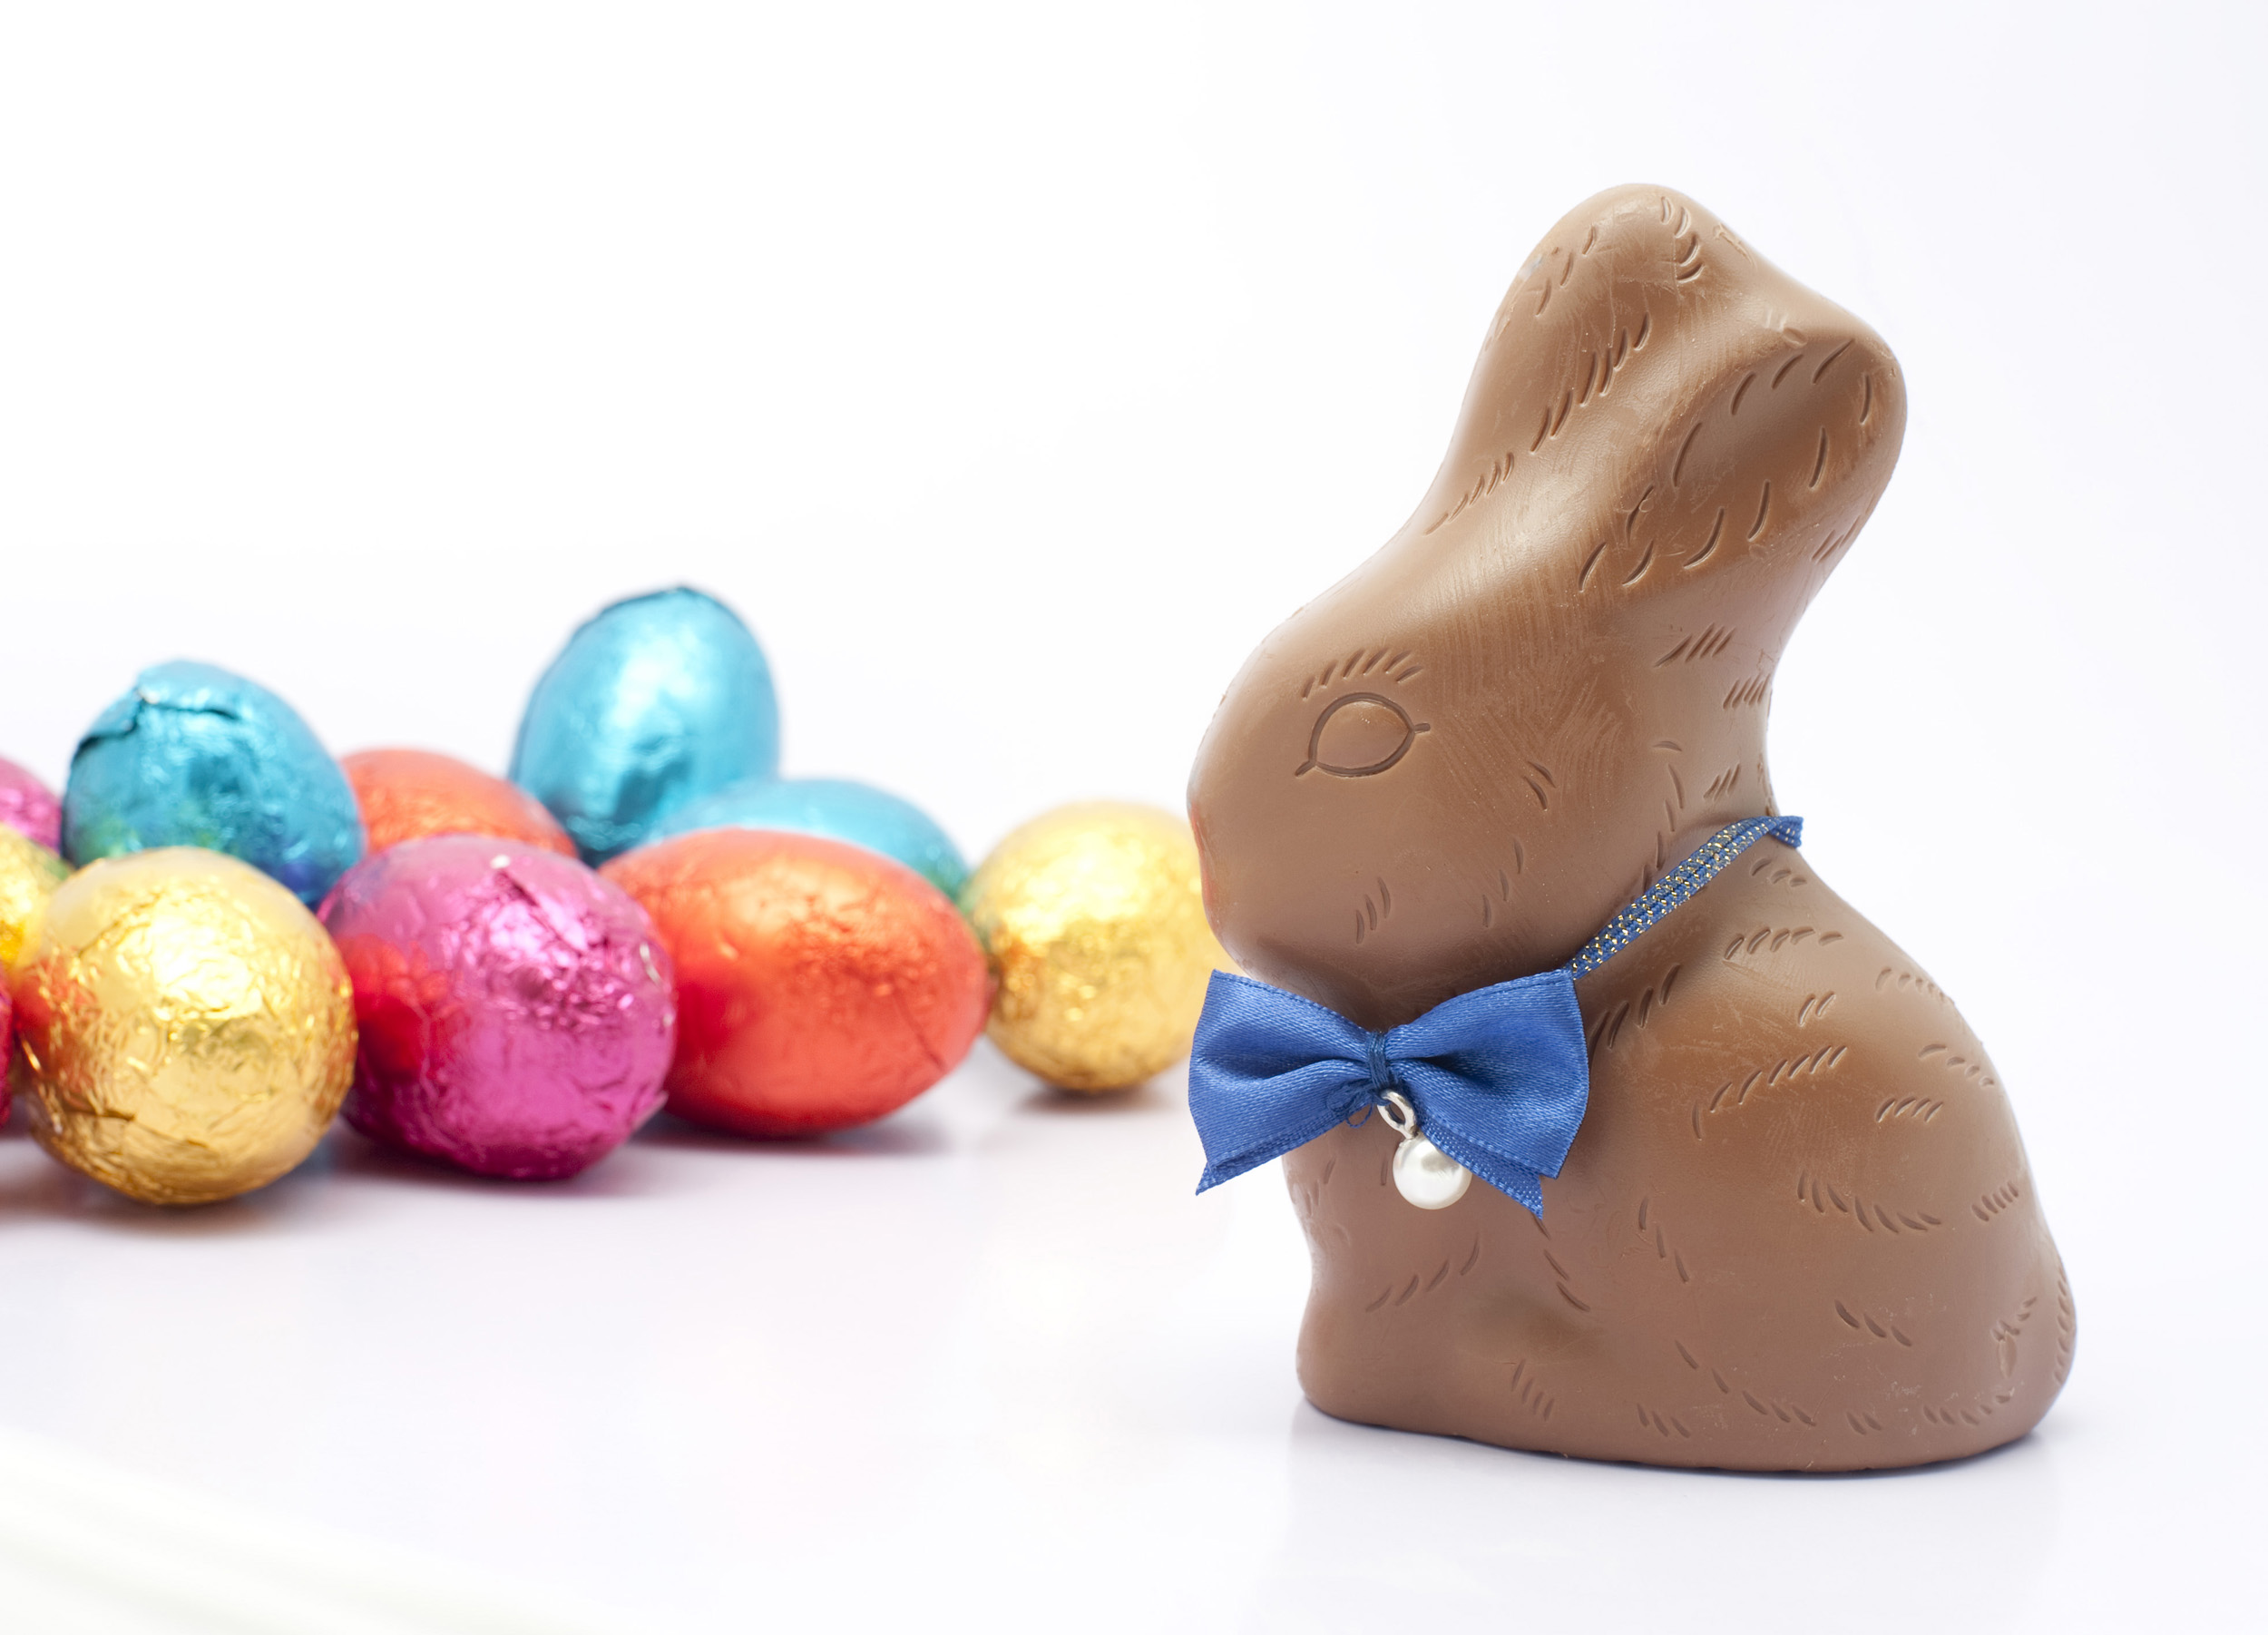 easter_bunny_eggs.jpg - Chocolate Easter bunny wearing a cute bow tie watching over a pile of colourful small Easter eggs